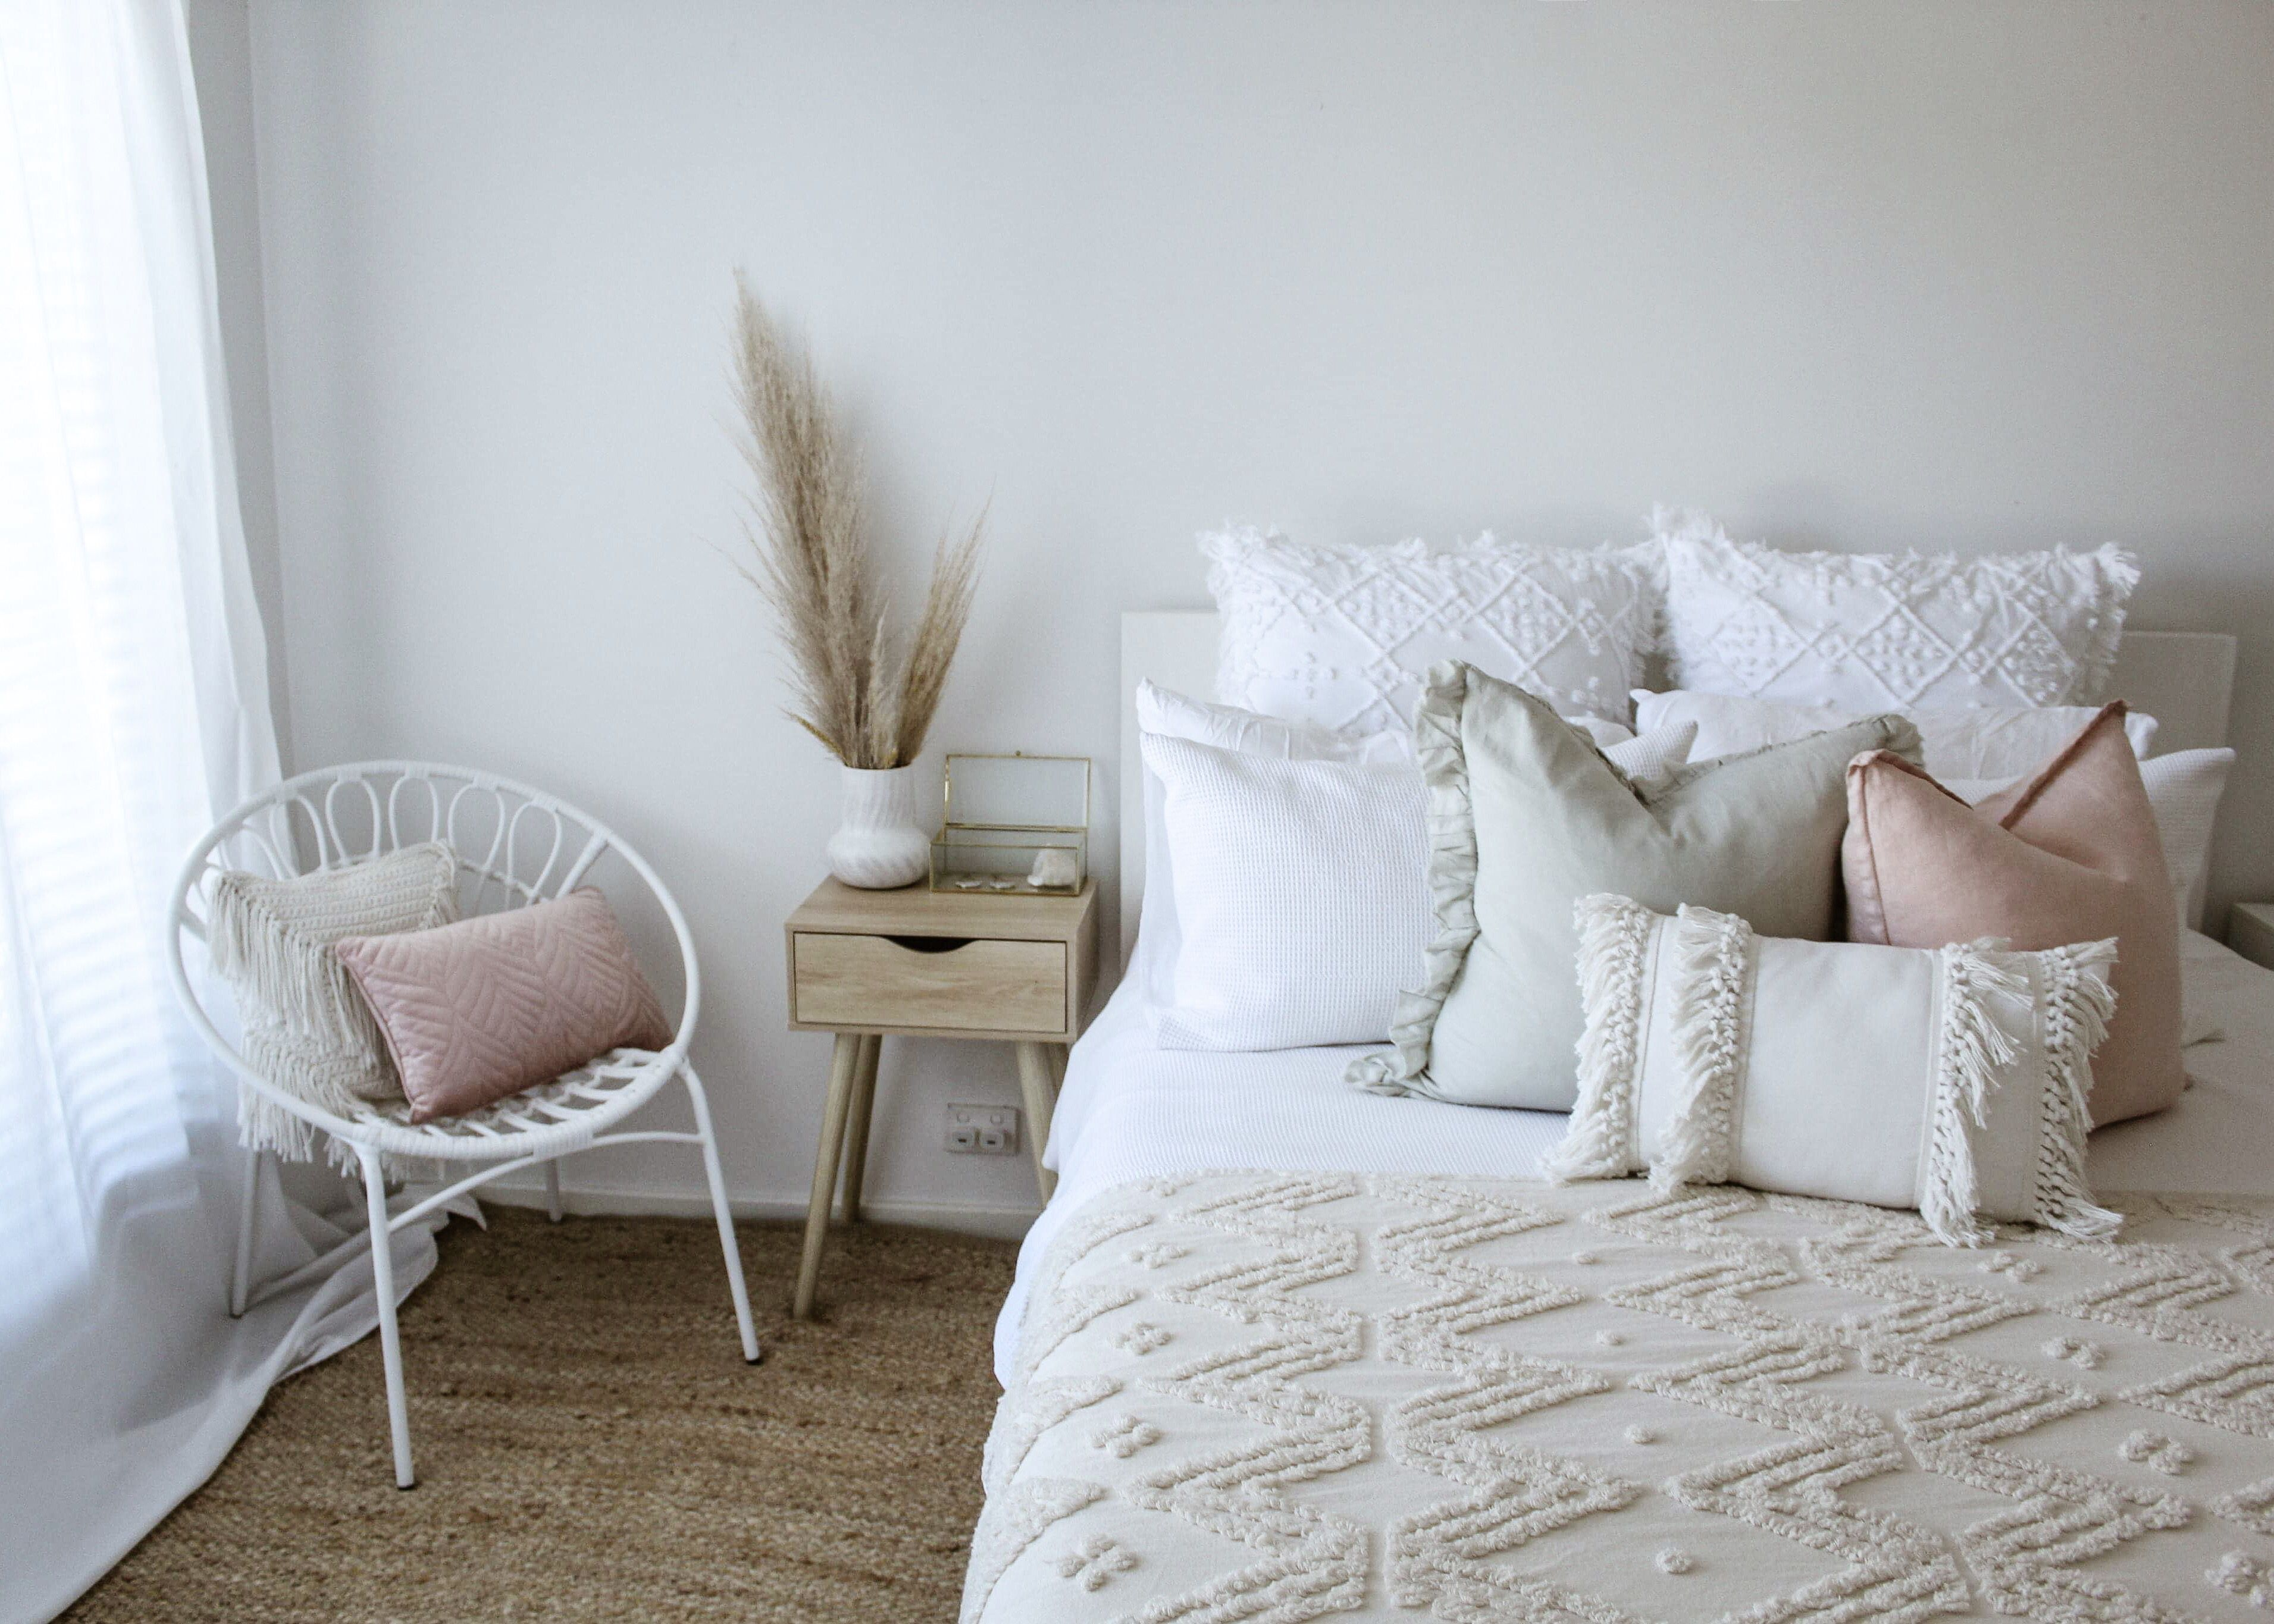 Pin By Leona Molloy On Kmart Bedroom Styles Kmart Home Bedroom Makeover